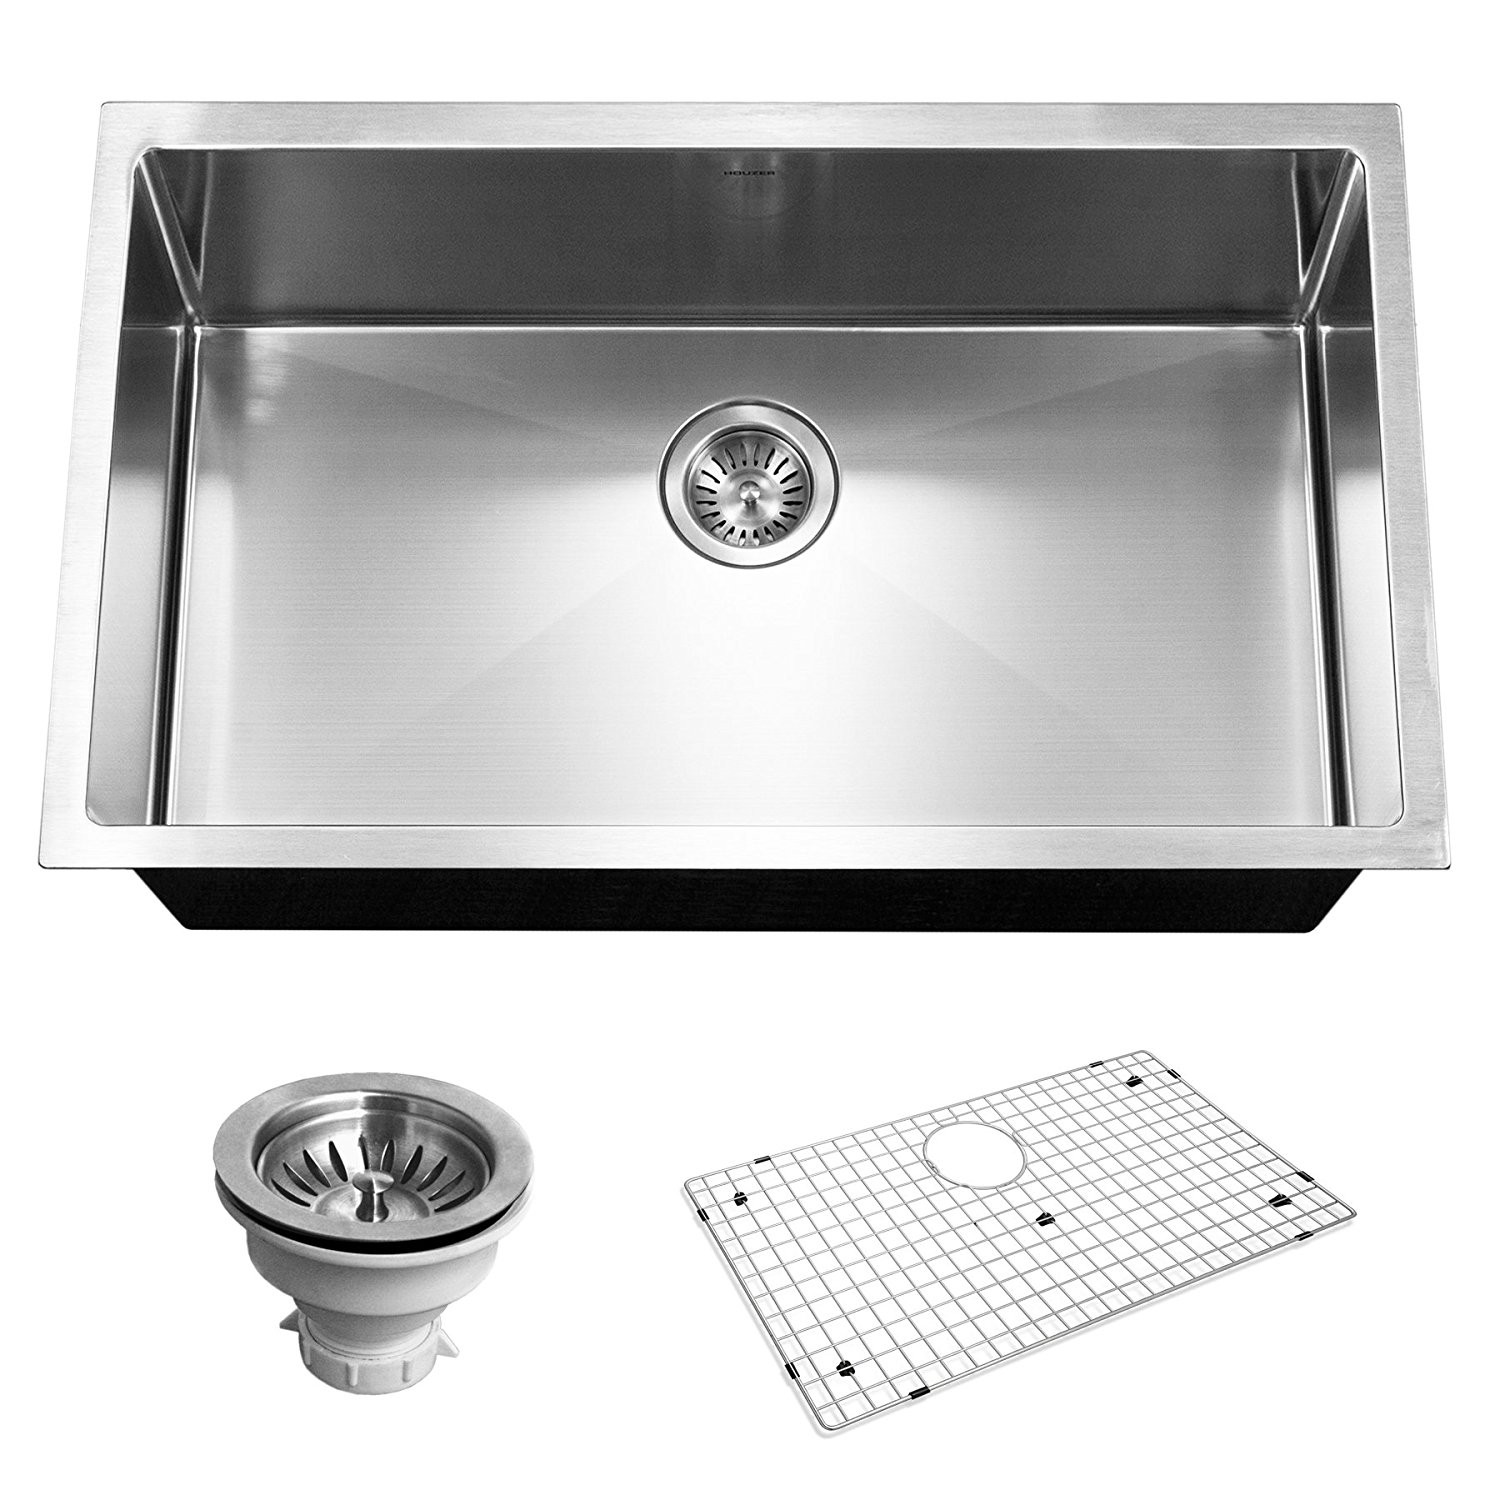 Houzer CNG-3200 Savoir Series 10mm Radius Undermount Large Single Bowl Kitchen Sink